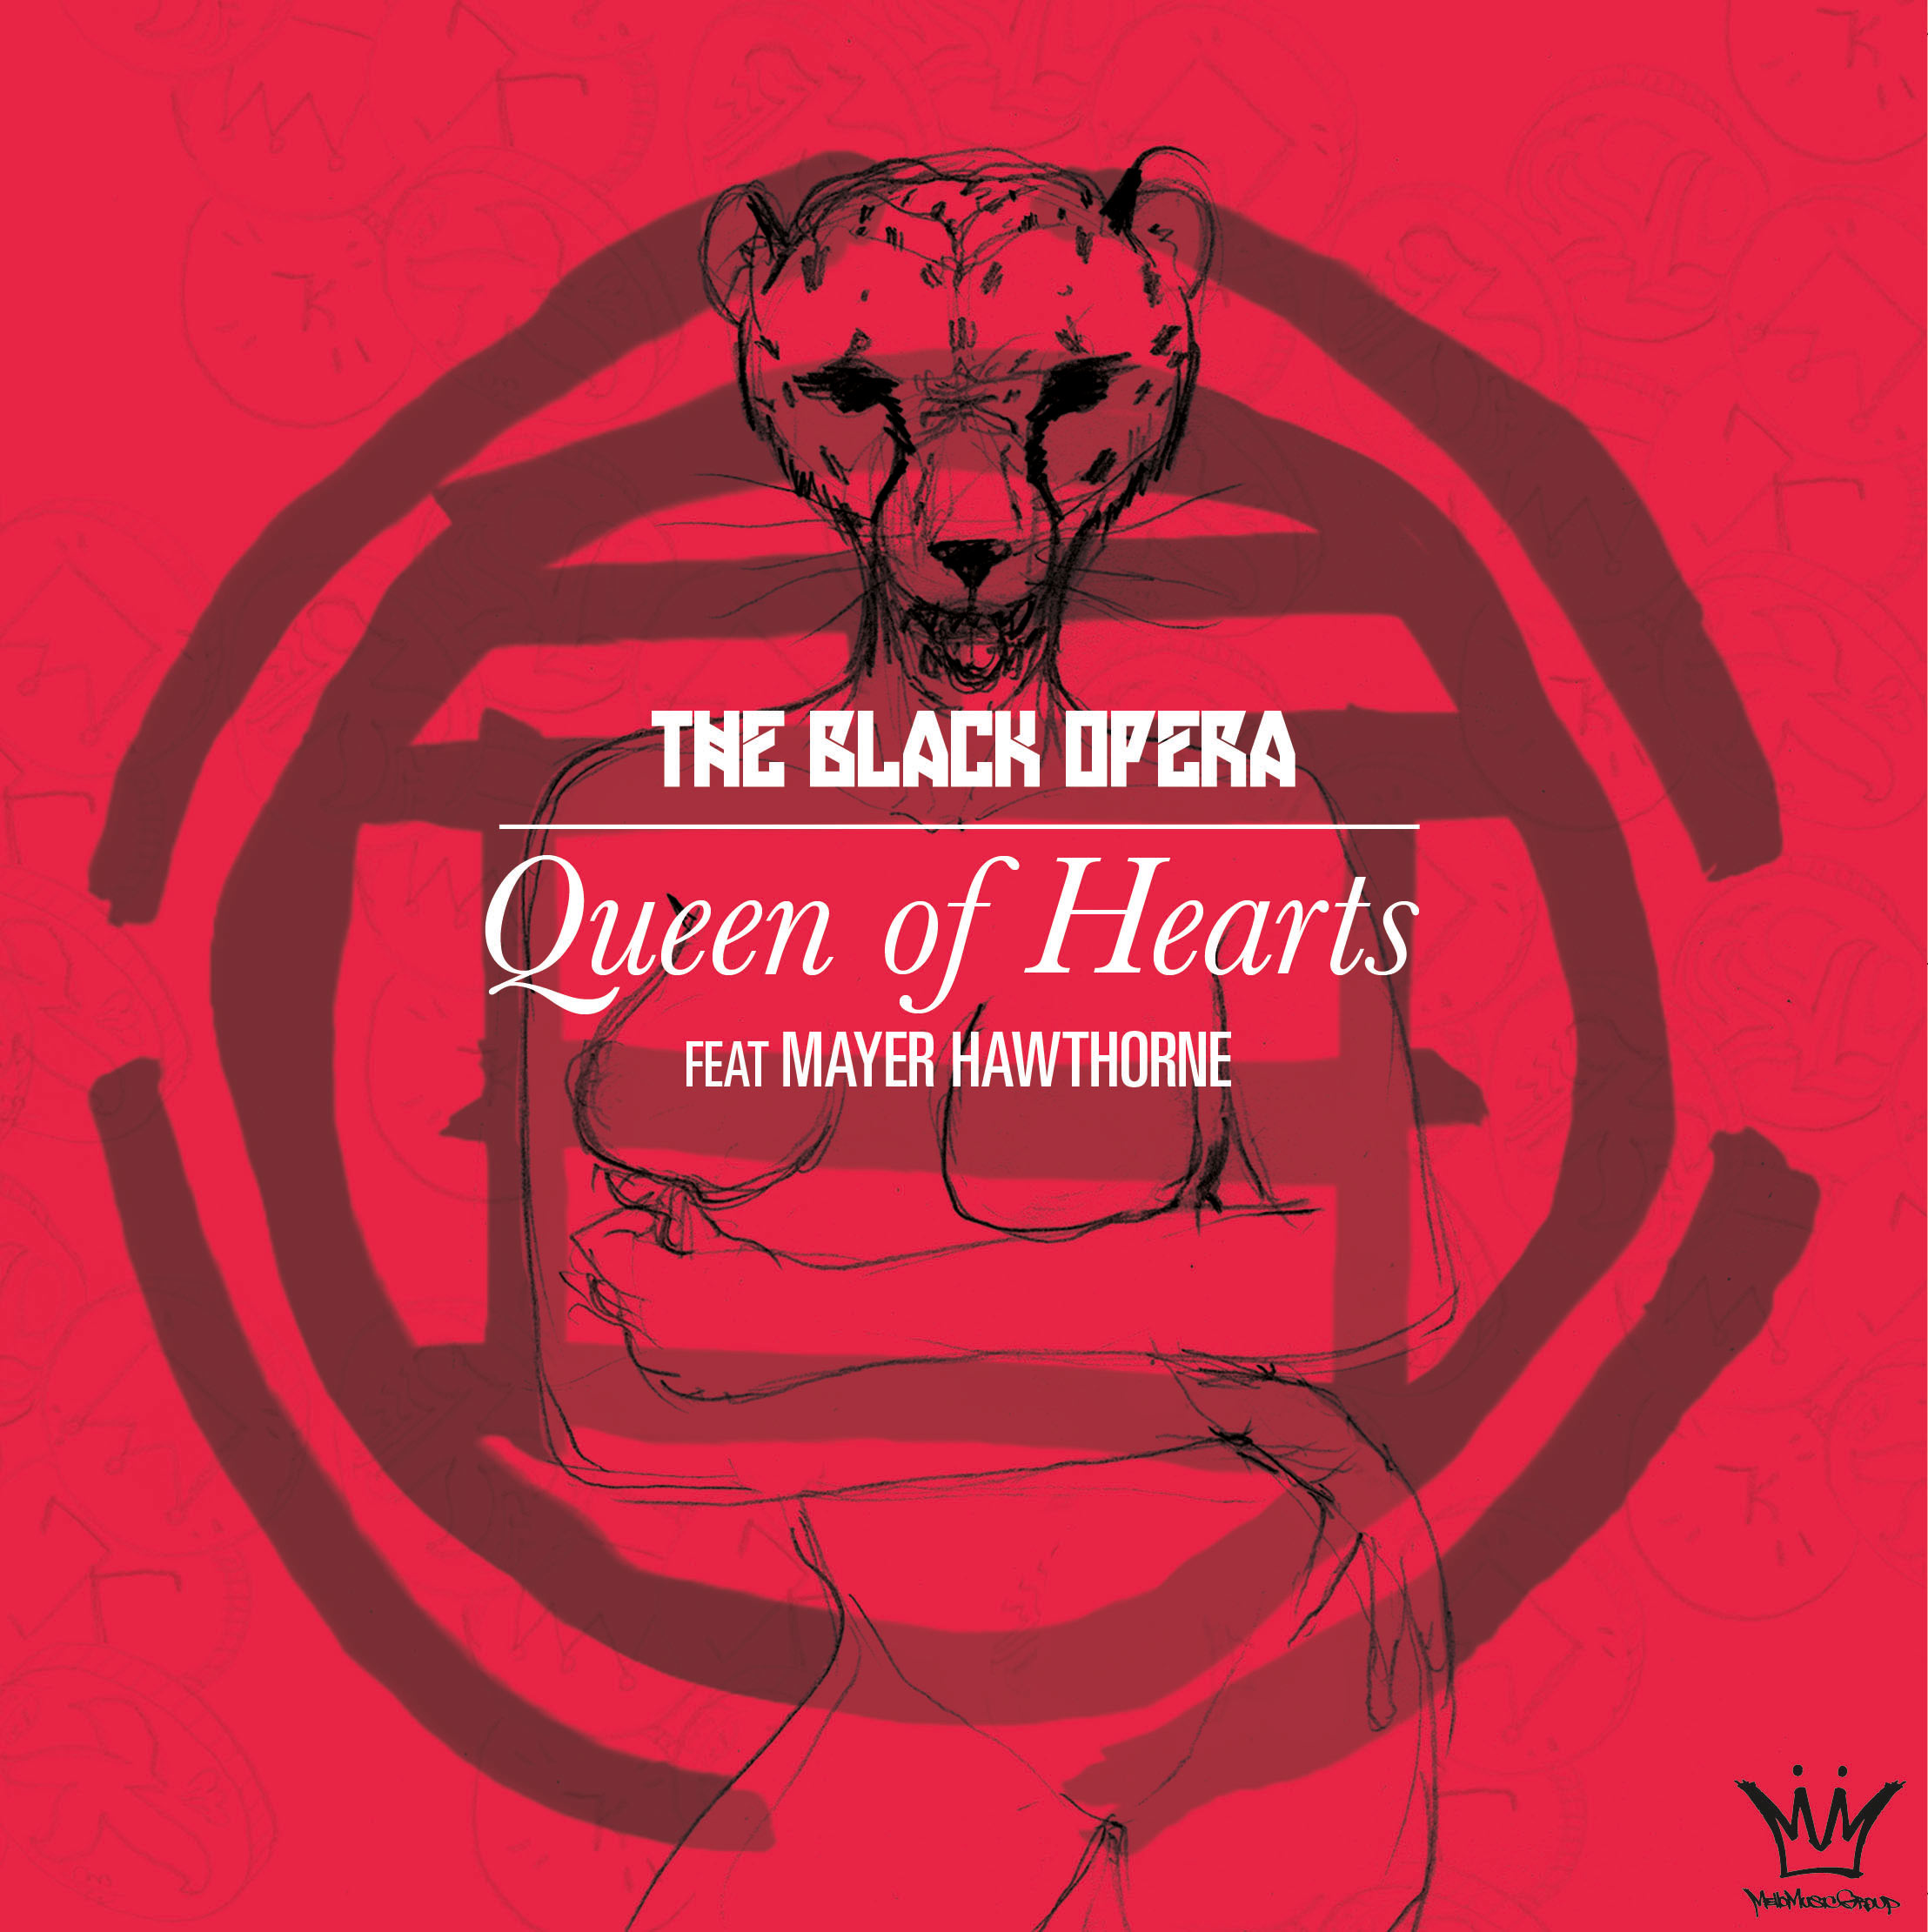 The Black Opera - Queen of Hearts Ft. Mayer Hawthorne